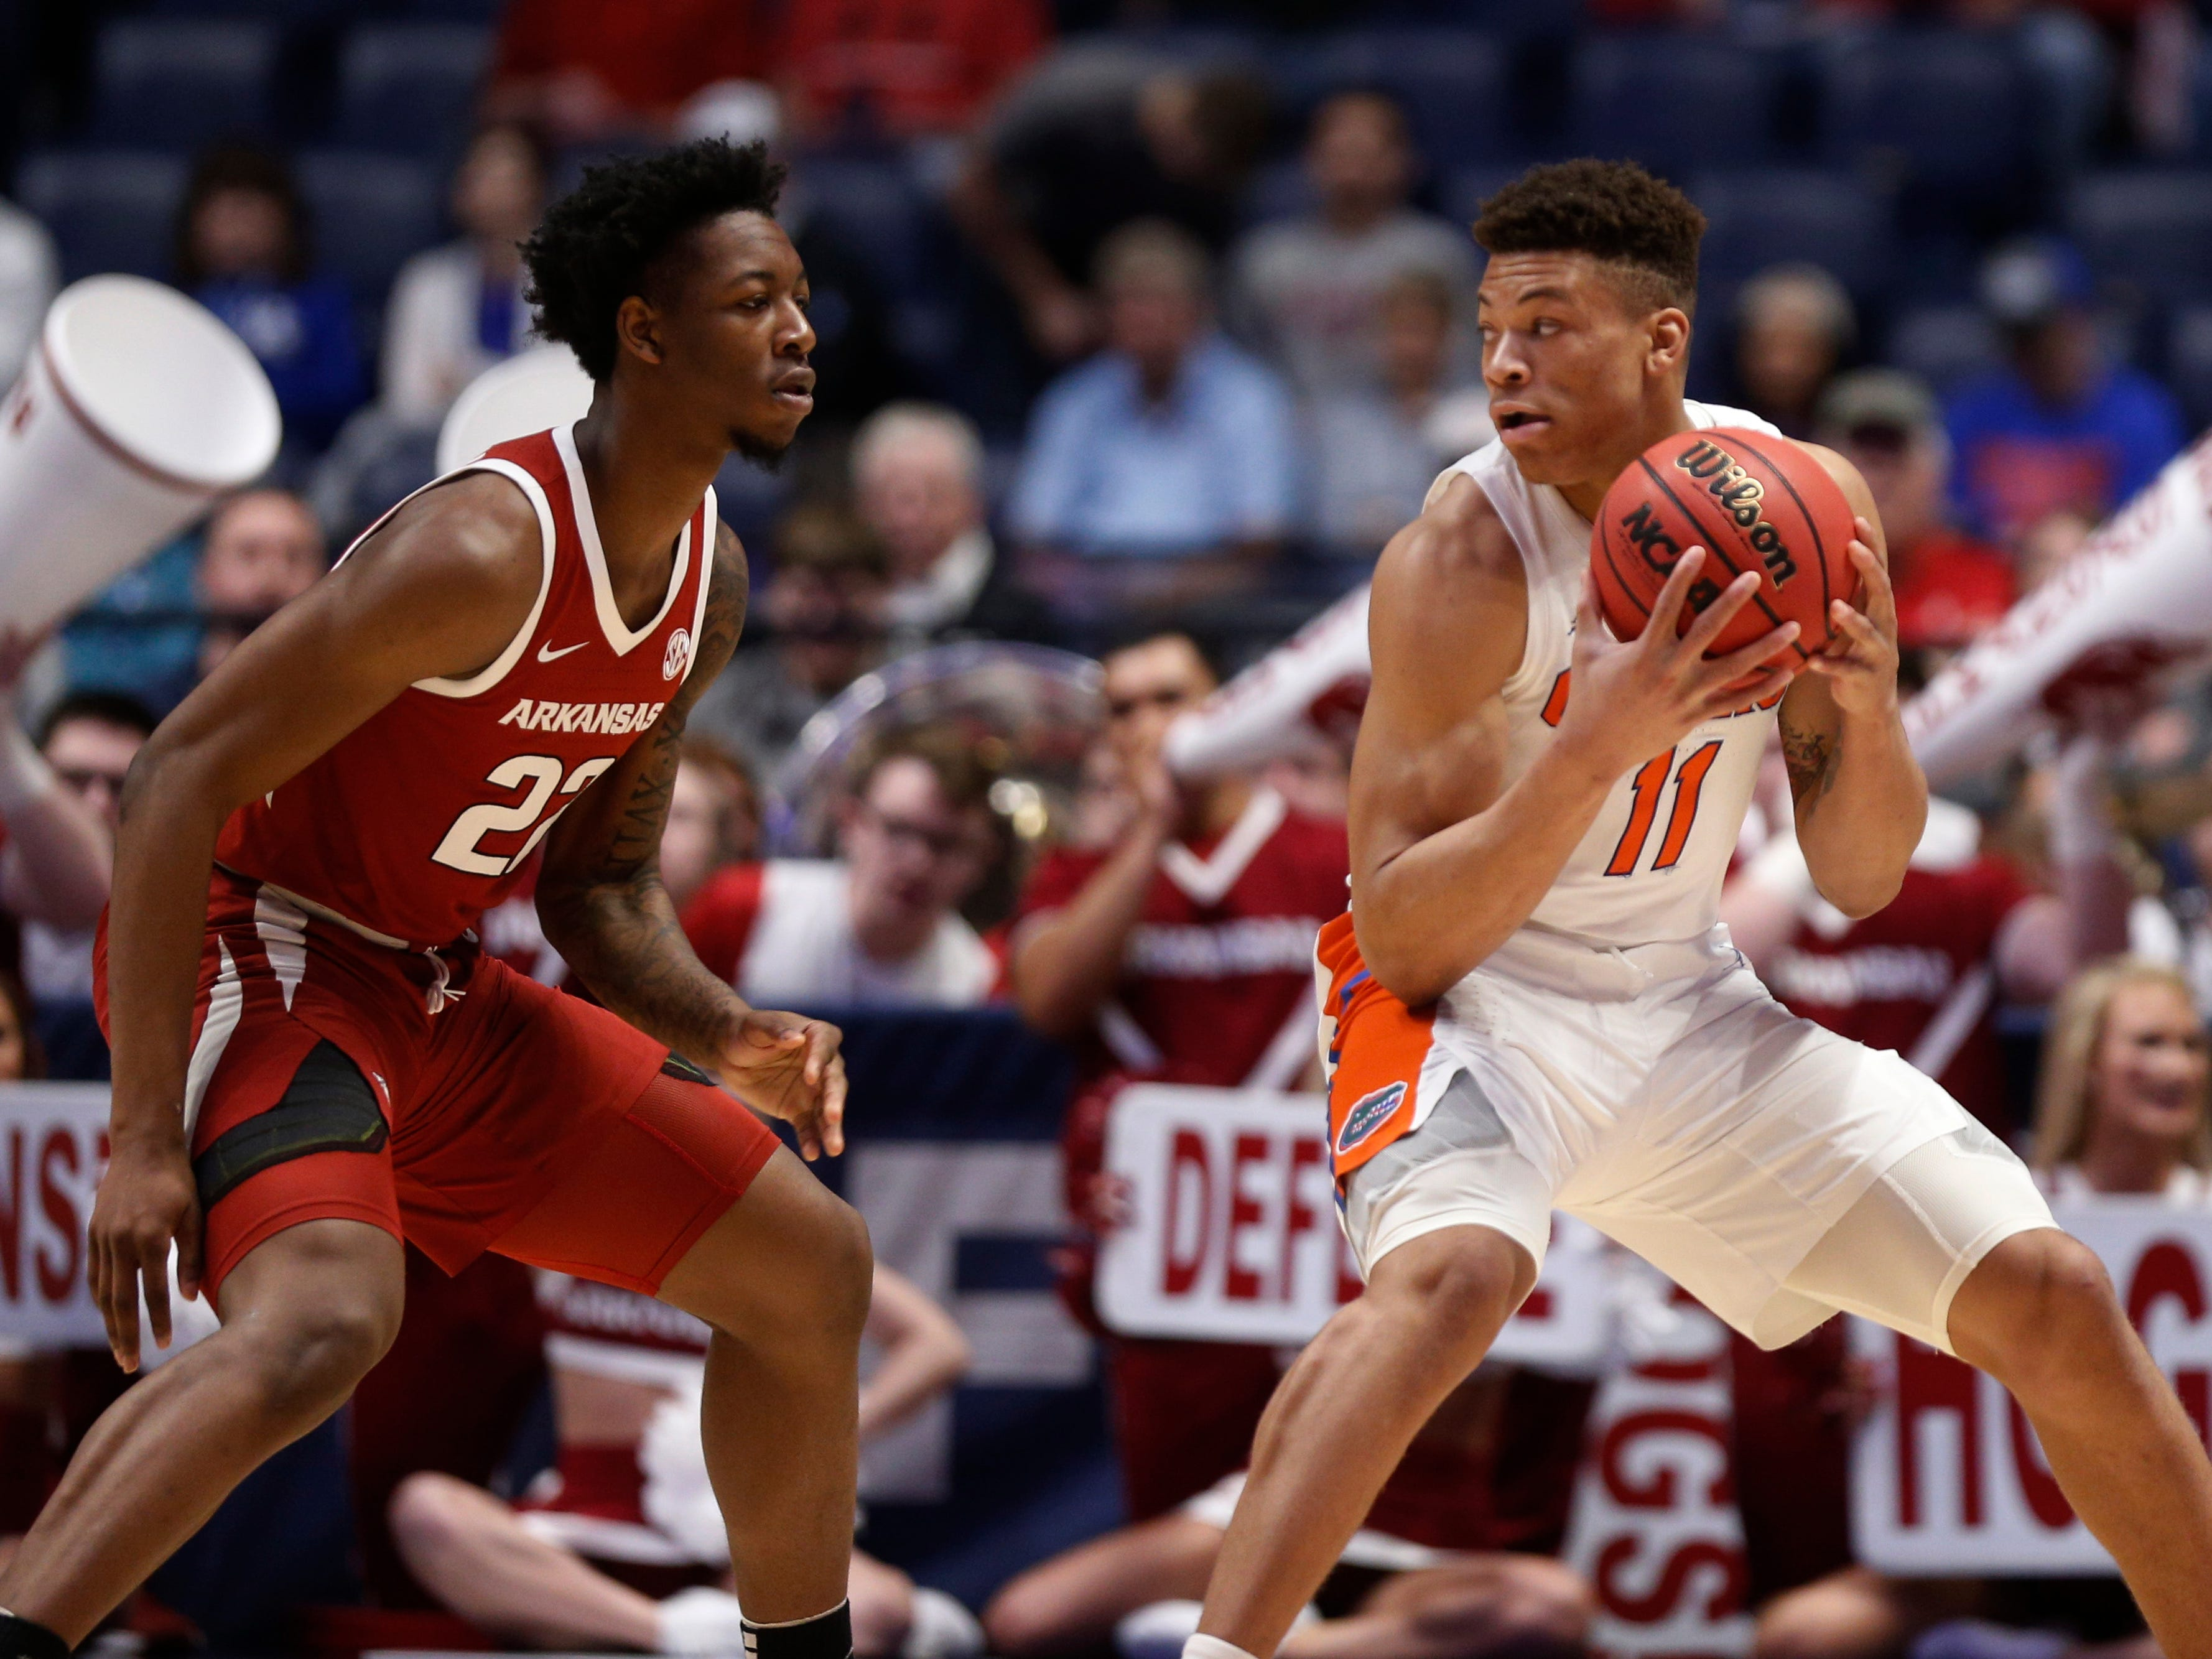 Florida forward Keyontae Johnson (11) tries to move the ball defended by Arkansas forward Gabe Osabuohien (22) during the first half of the SEC Men's Basketball Tournament game at Bridgestone Arena in Nashville, Tenn., Thursday, March 14, 2019.